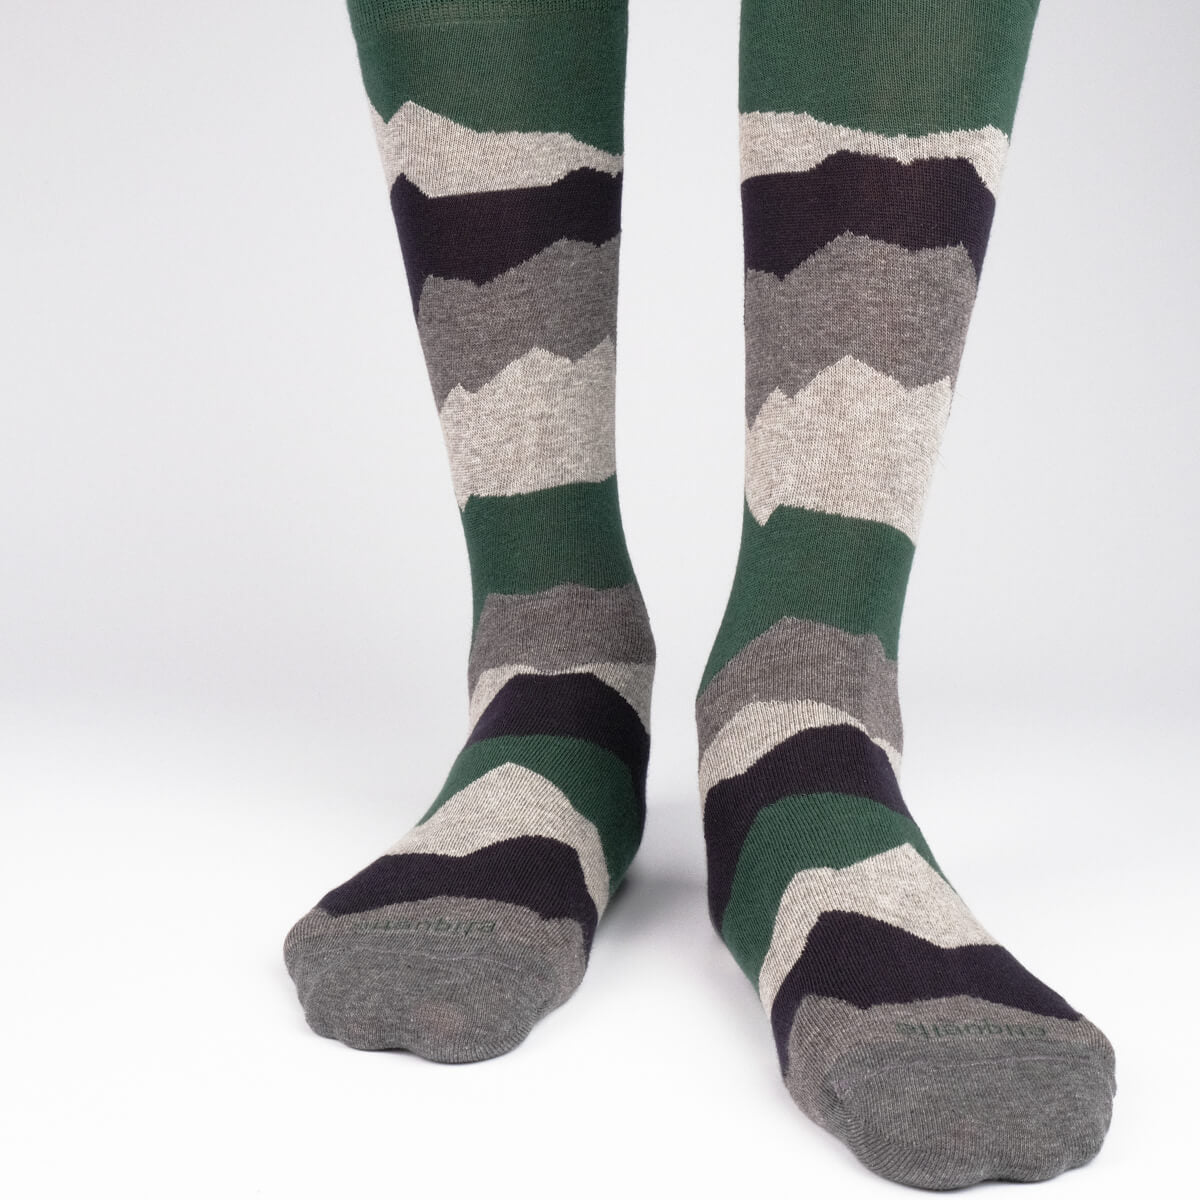 Mens Socks - Seismic Activity Men's Socks Gift Box - Green⎪Etiquette Clothiers